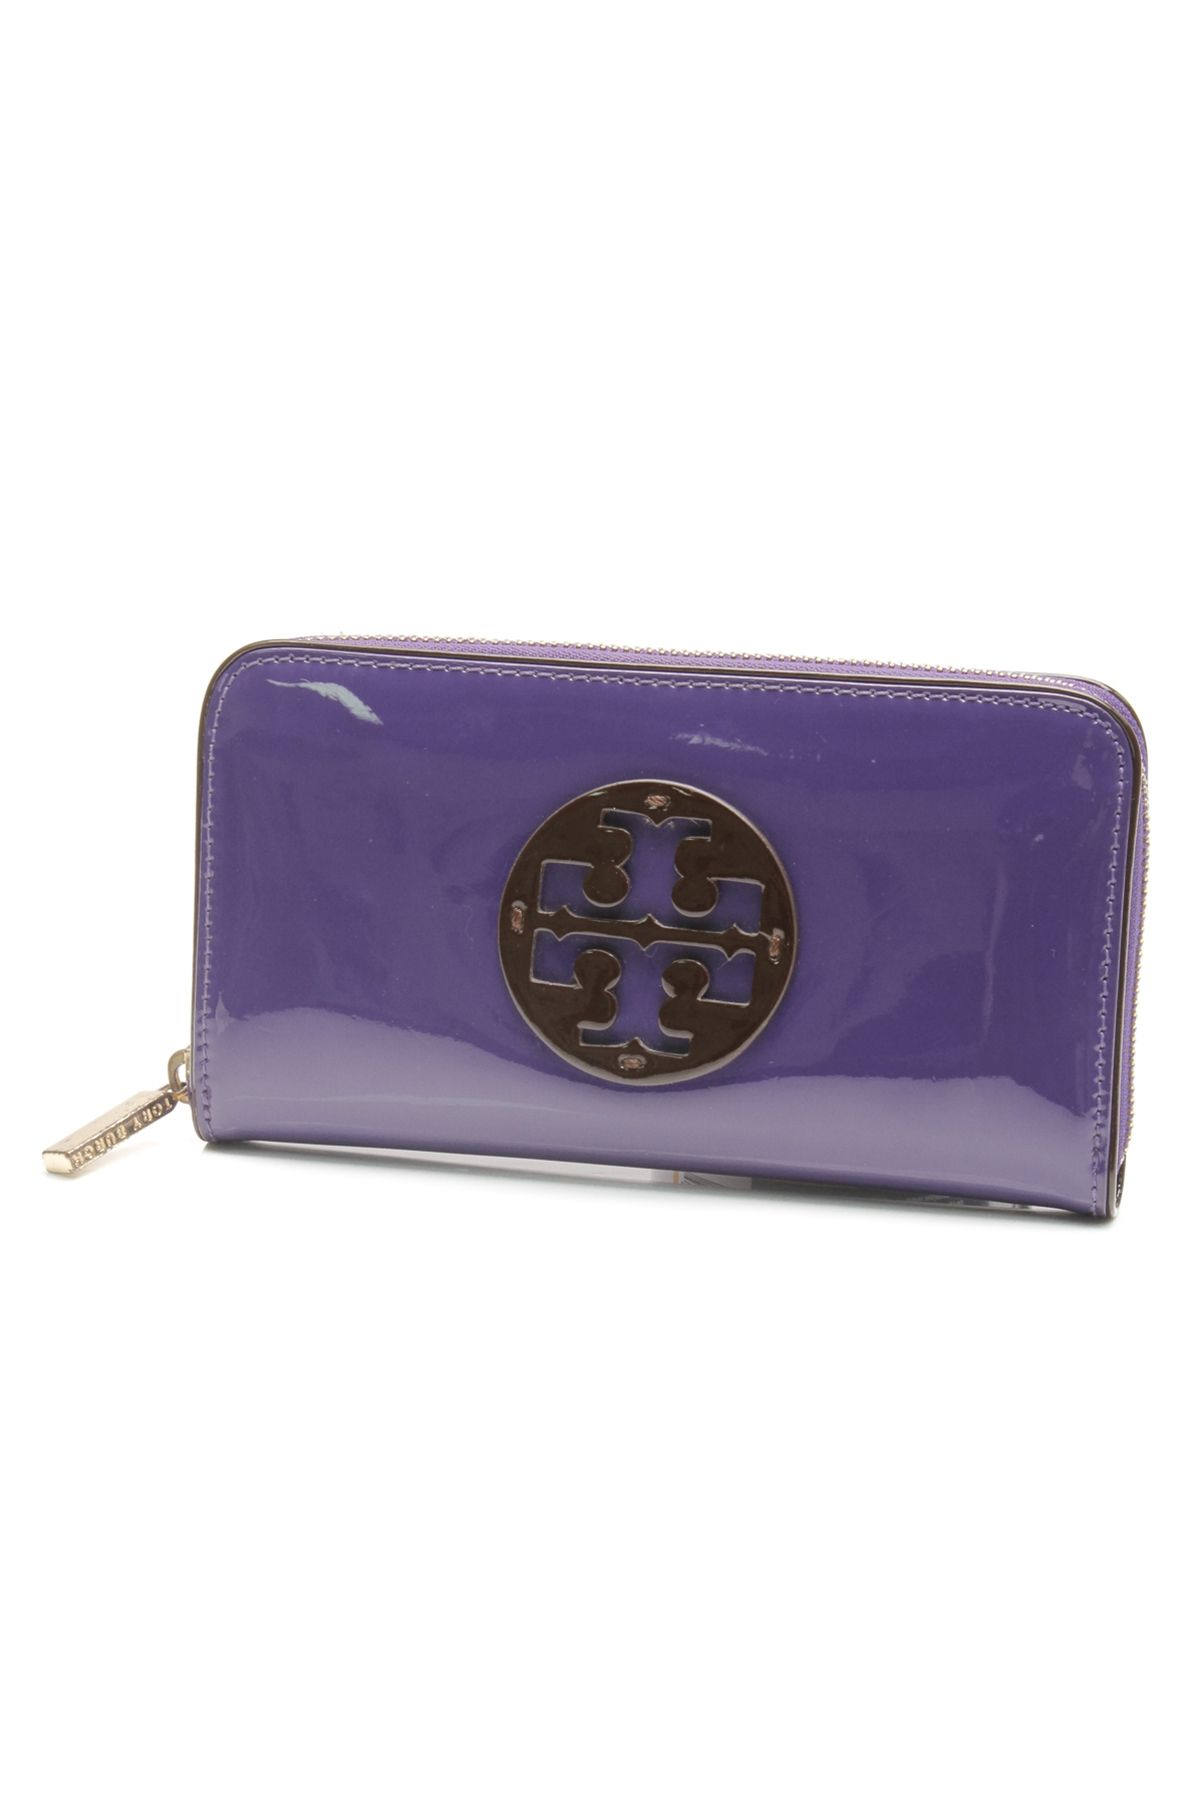 3e03fe771 Tory Burch purple patent leather wallet (our price   89.99)